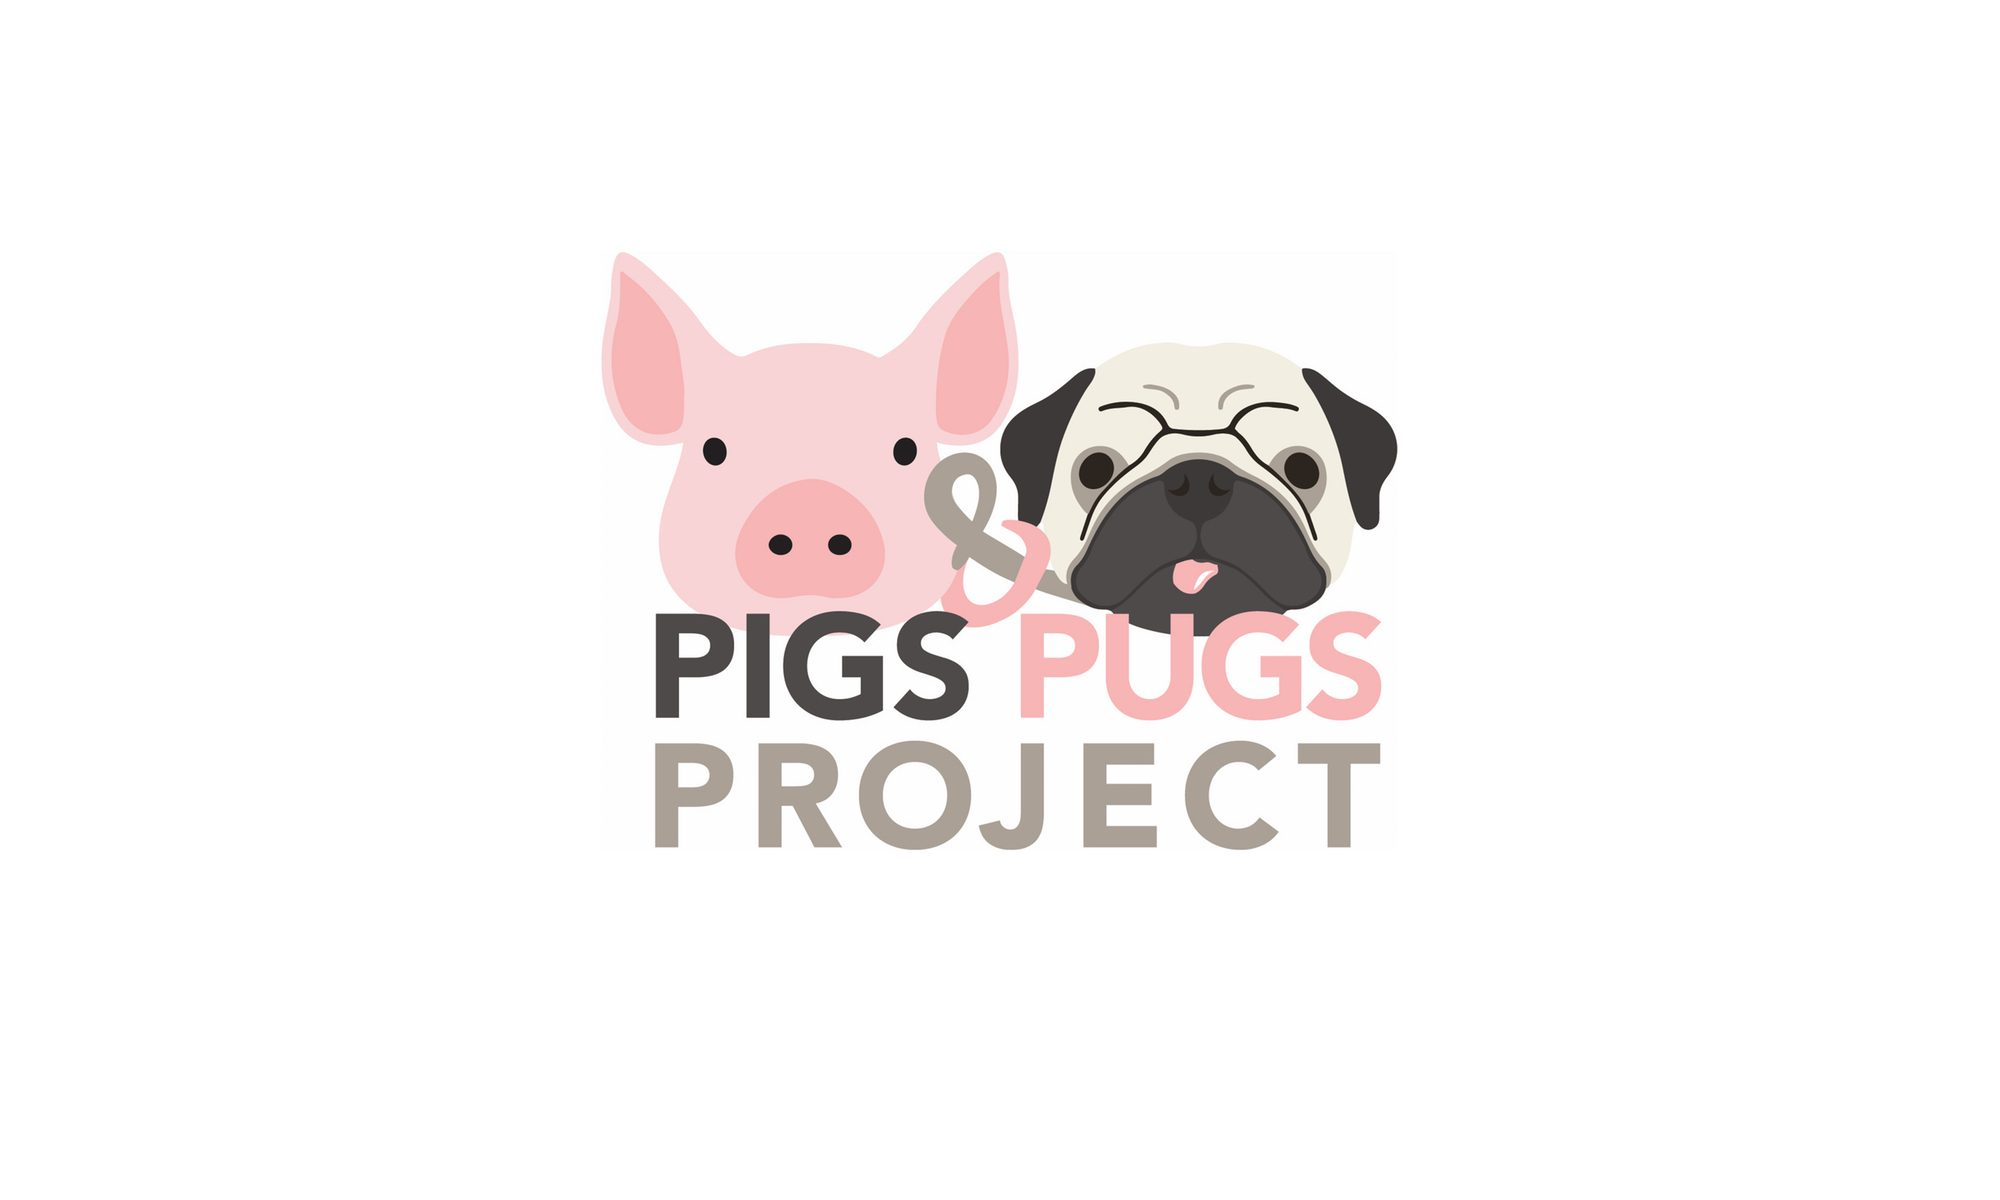 Pigs & Pugs Project